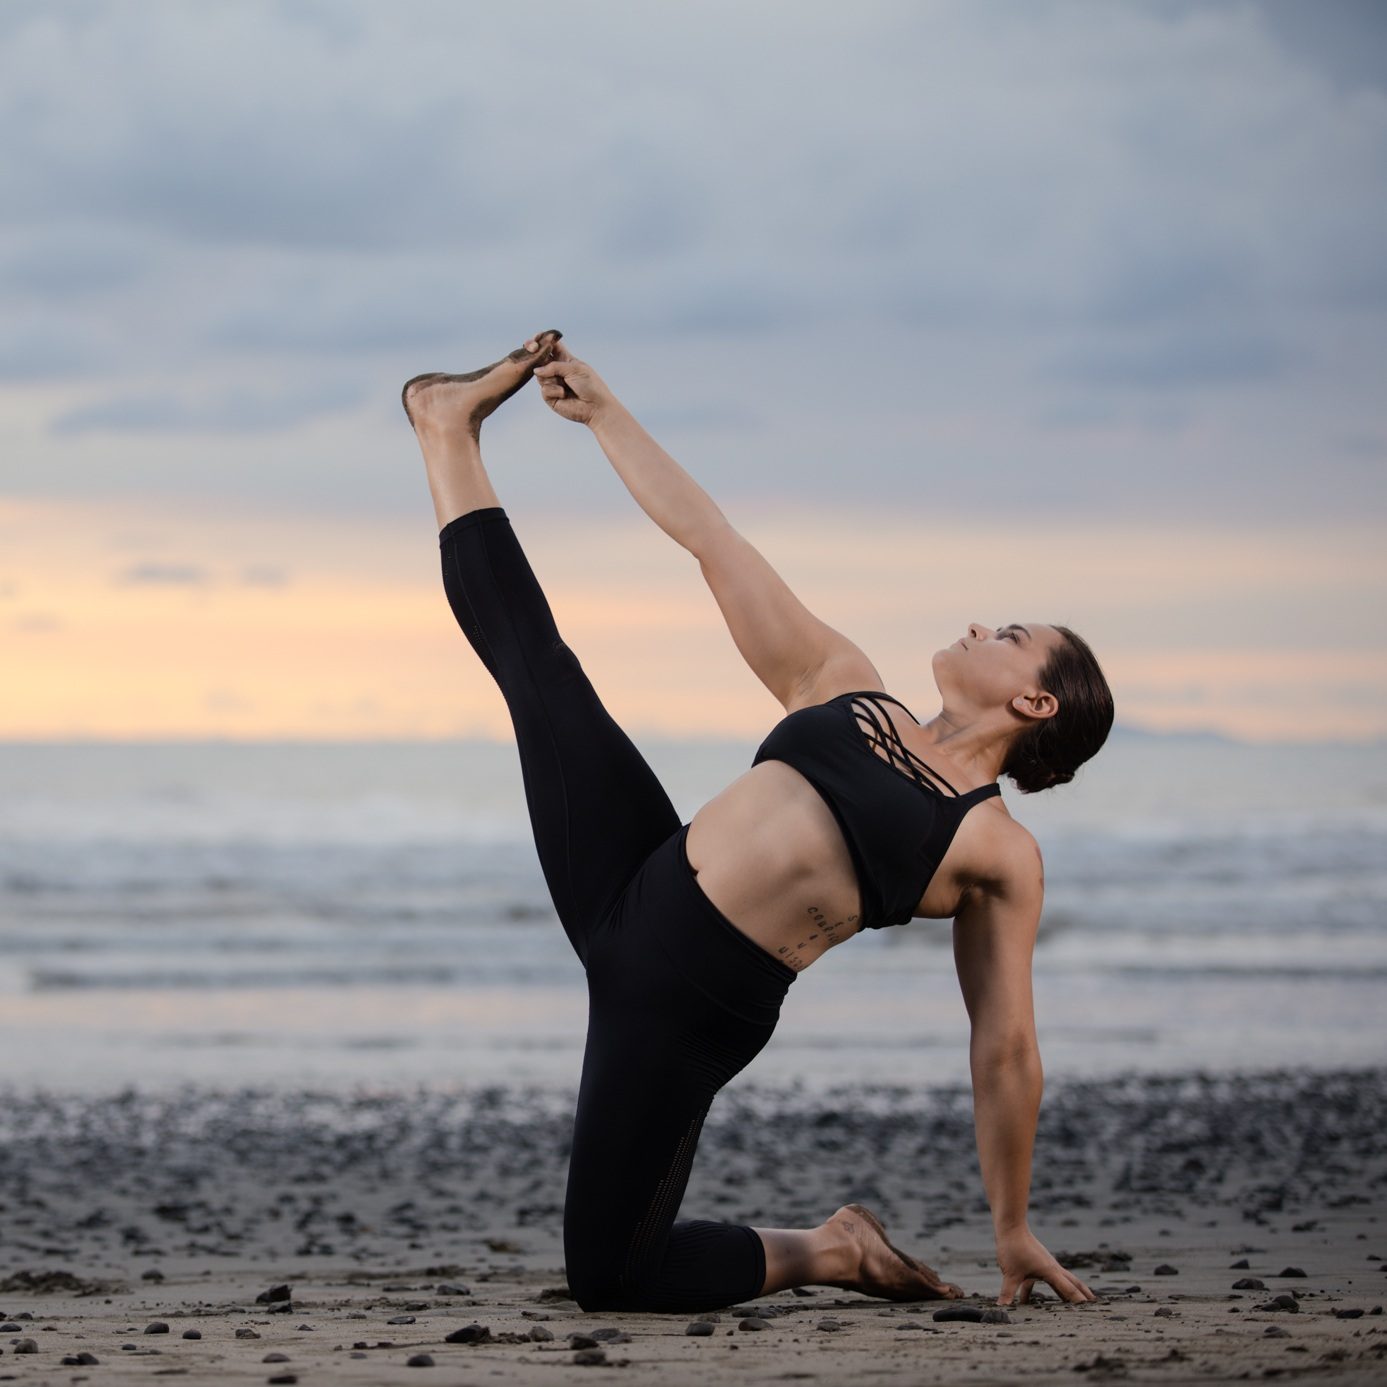 Lauren Marie Murray_Yoga_Andrew Feller.jpg